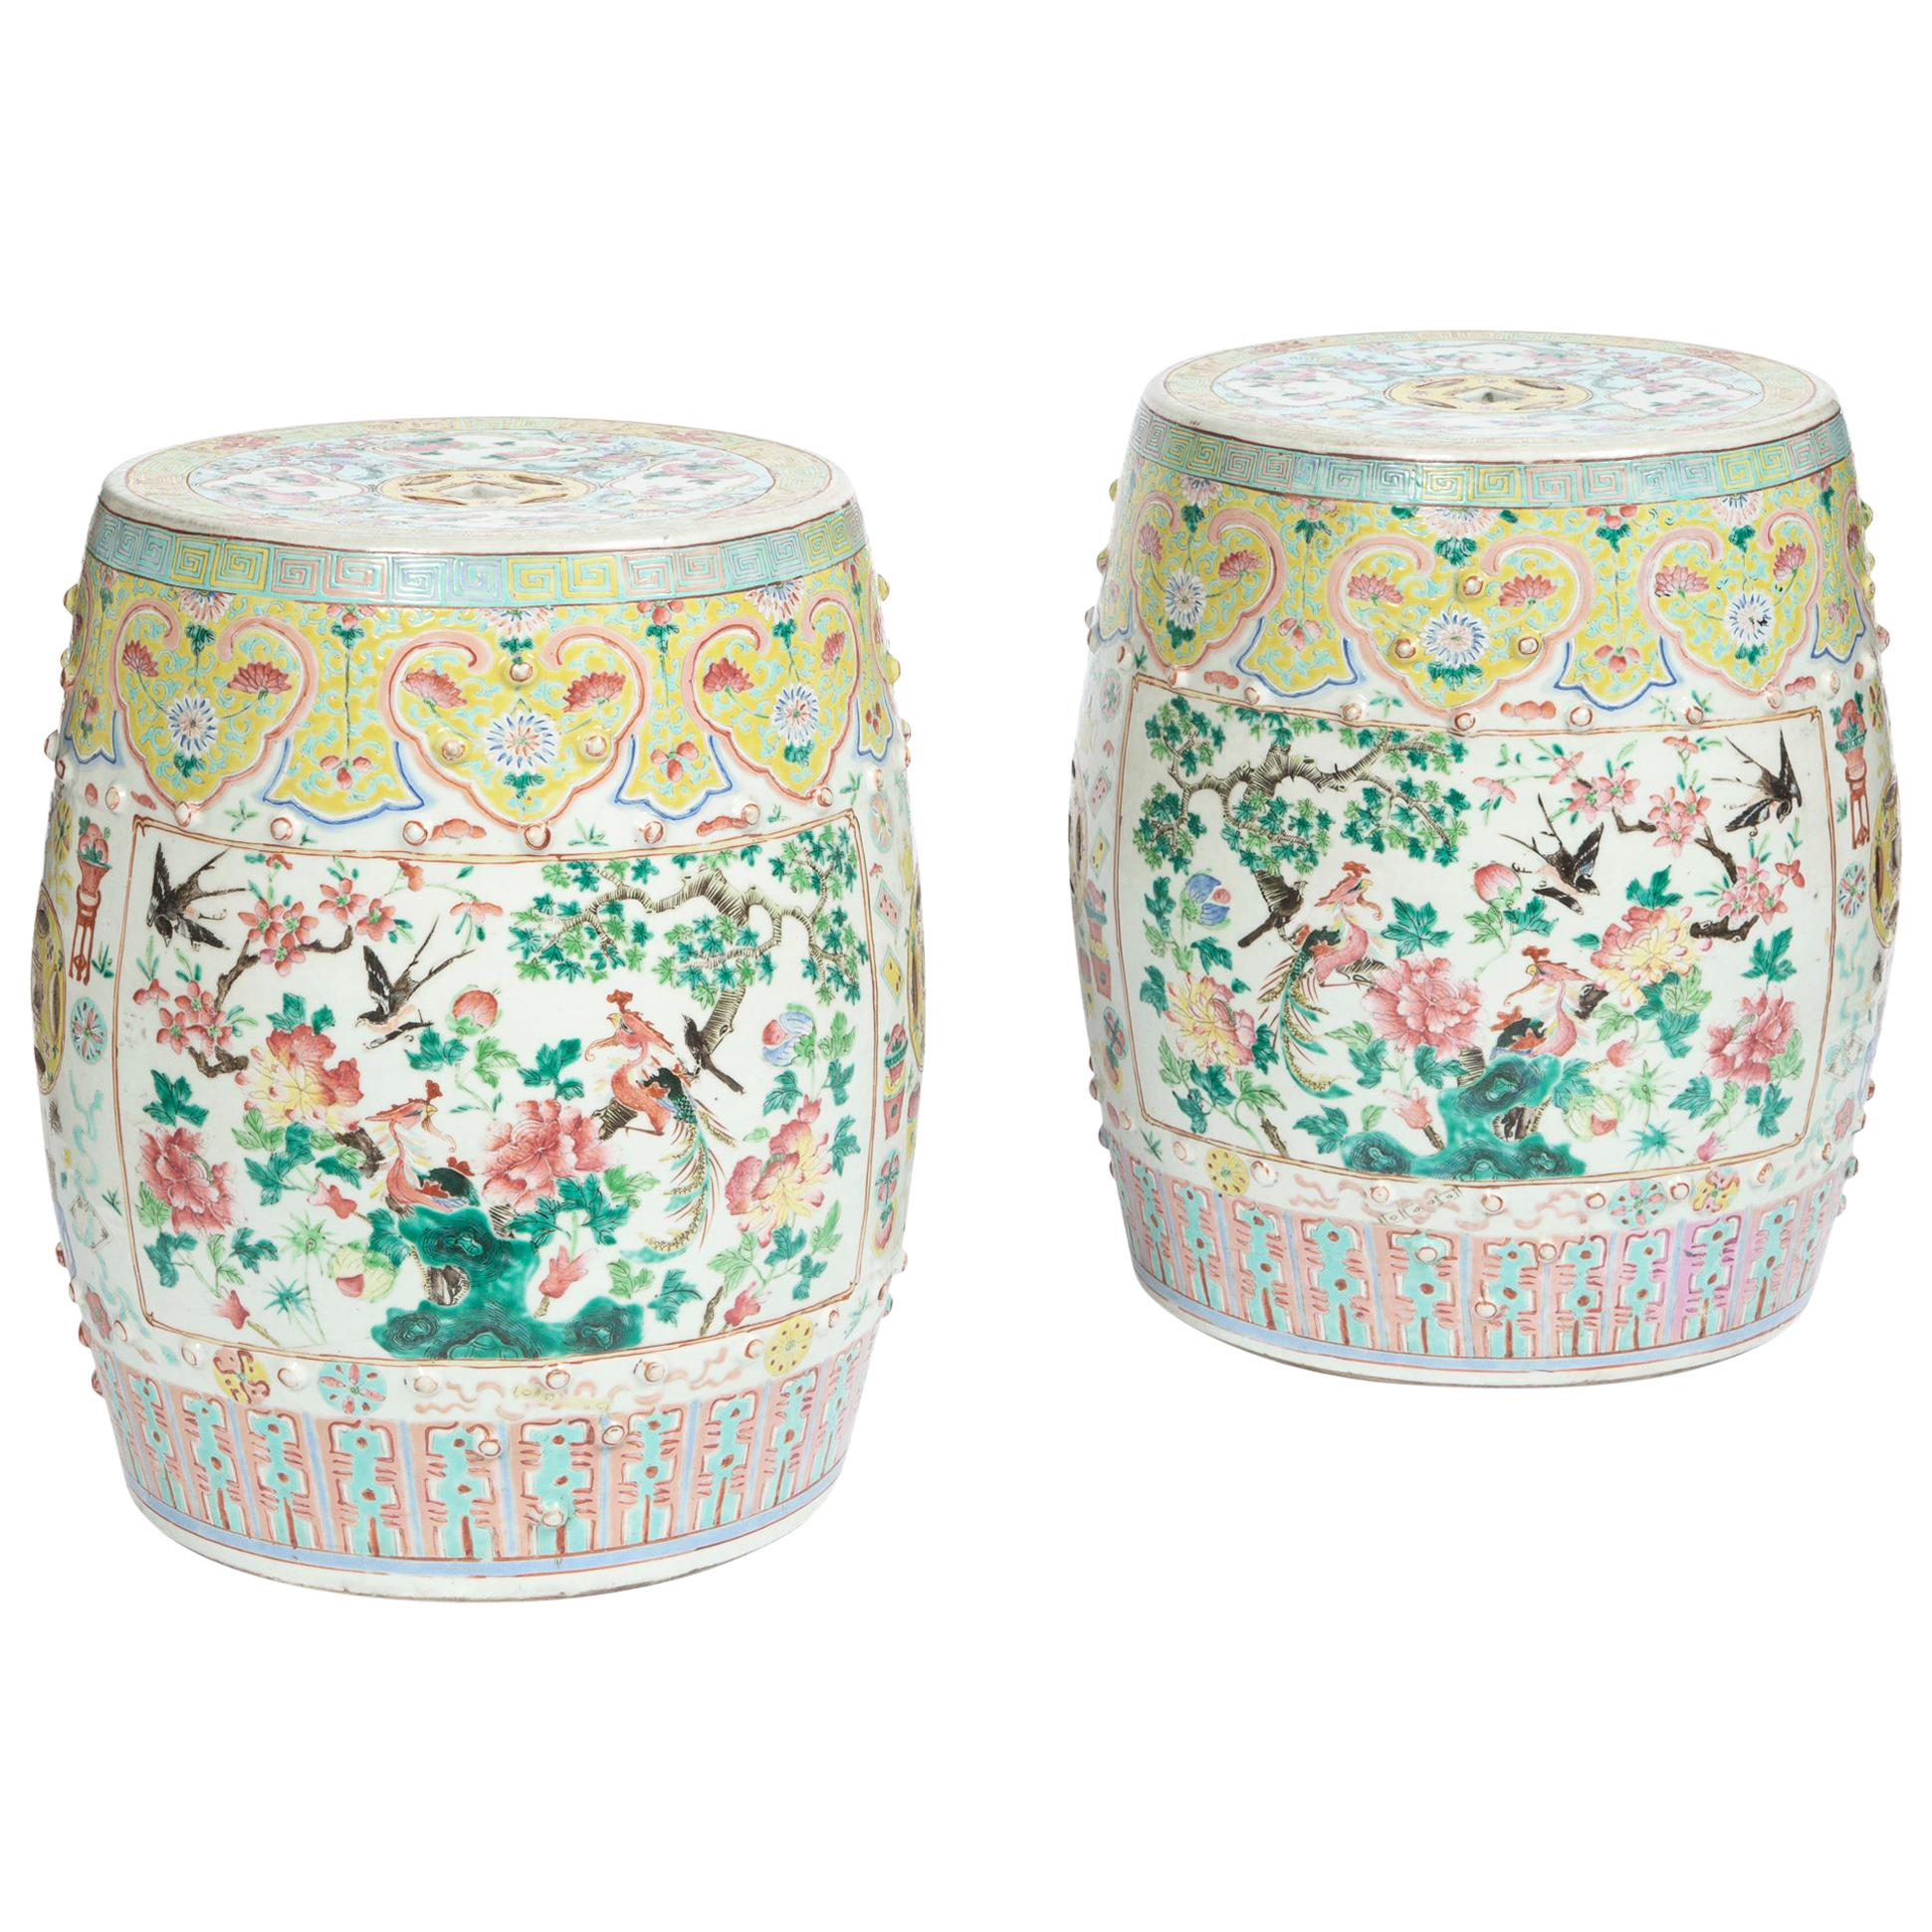 Chinese Export Porcelain Yellow Garden Seats, Mid-19th Century